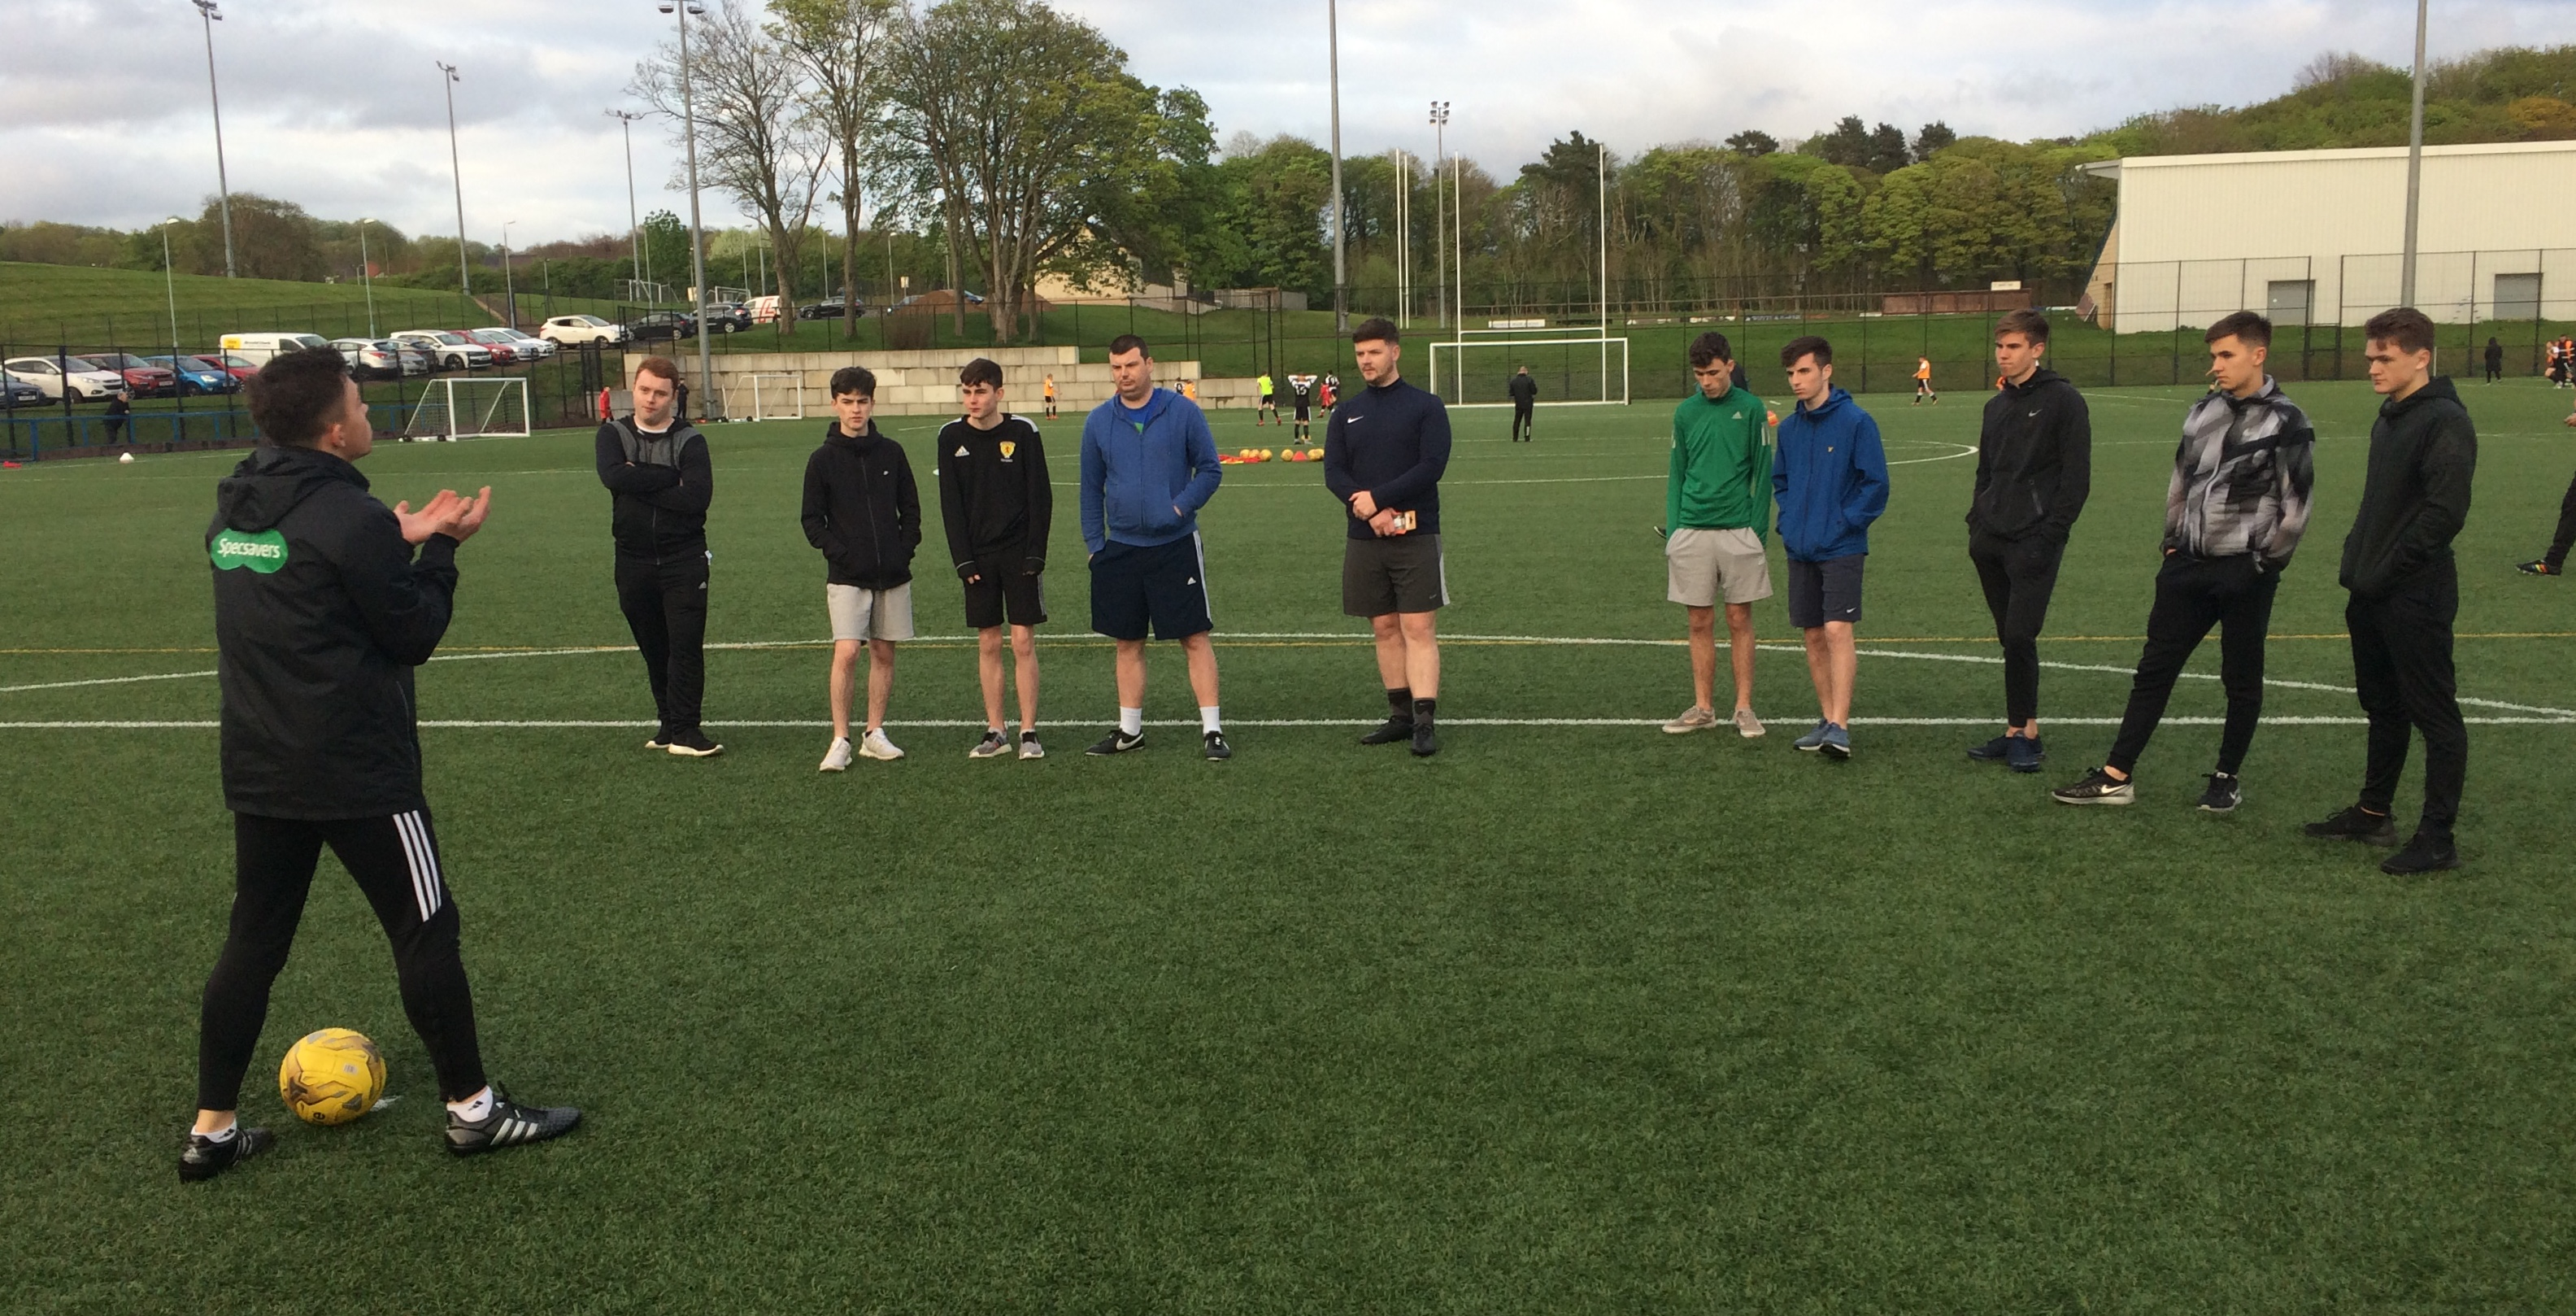 LANARKSHIRE WELCOMES 27 NEW REFEREES